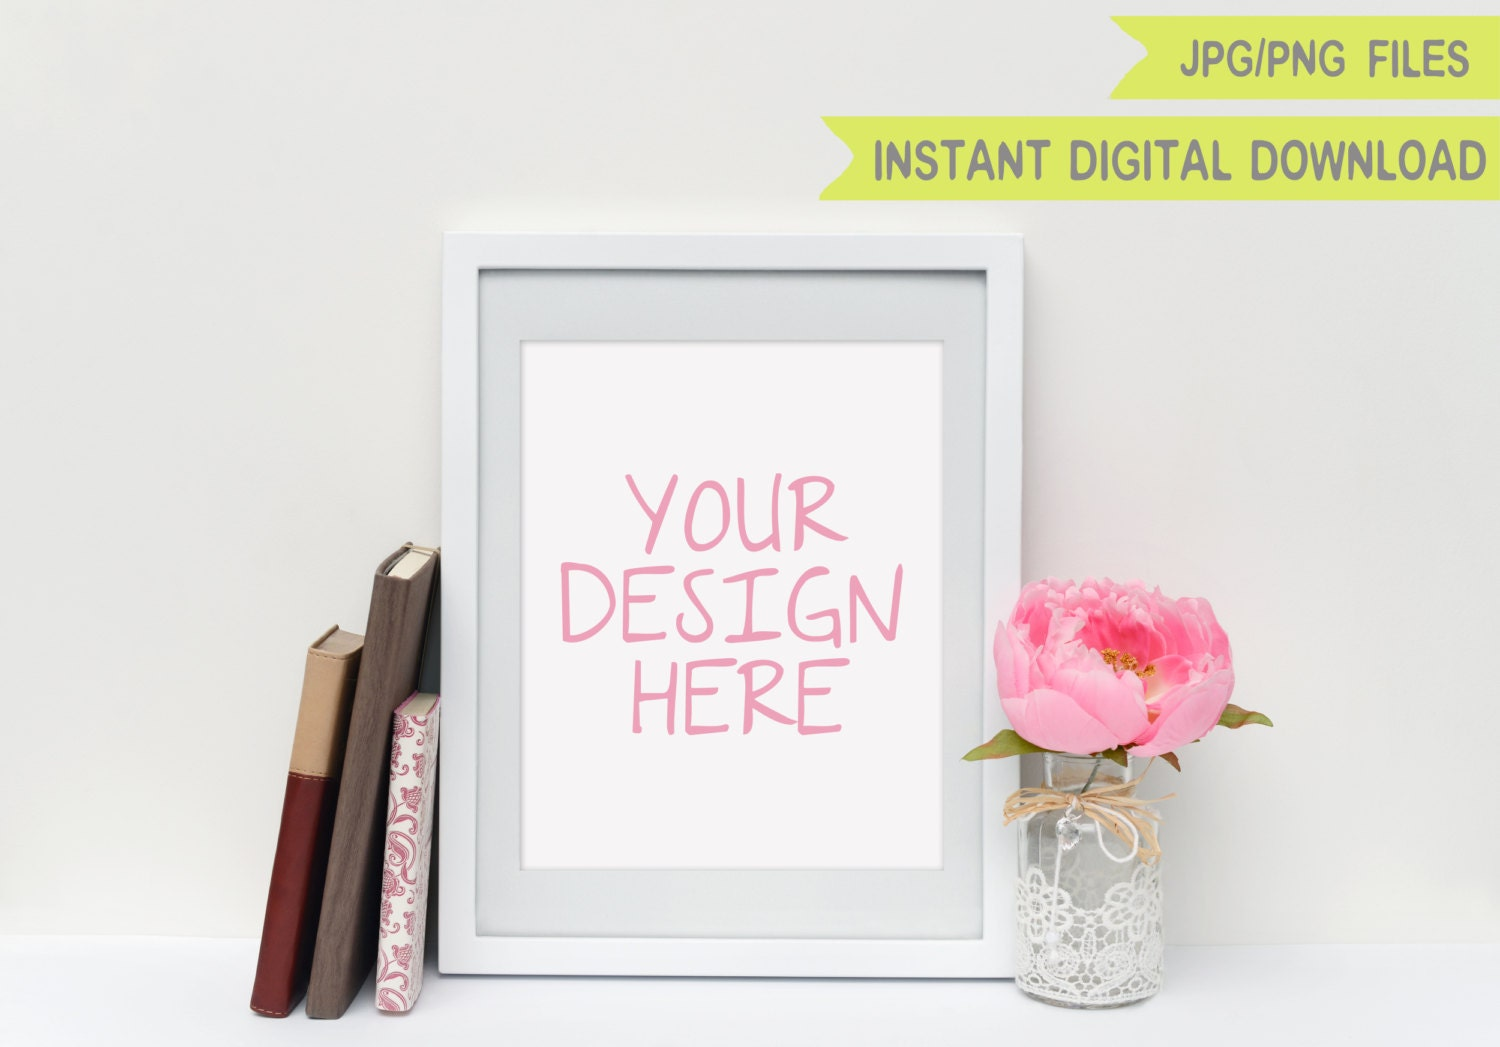 8x10 mockup white frame mock up digital white frame 8x10 frame mockup frame download photo frame mockup white frame mockup digital